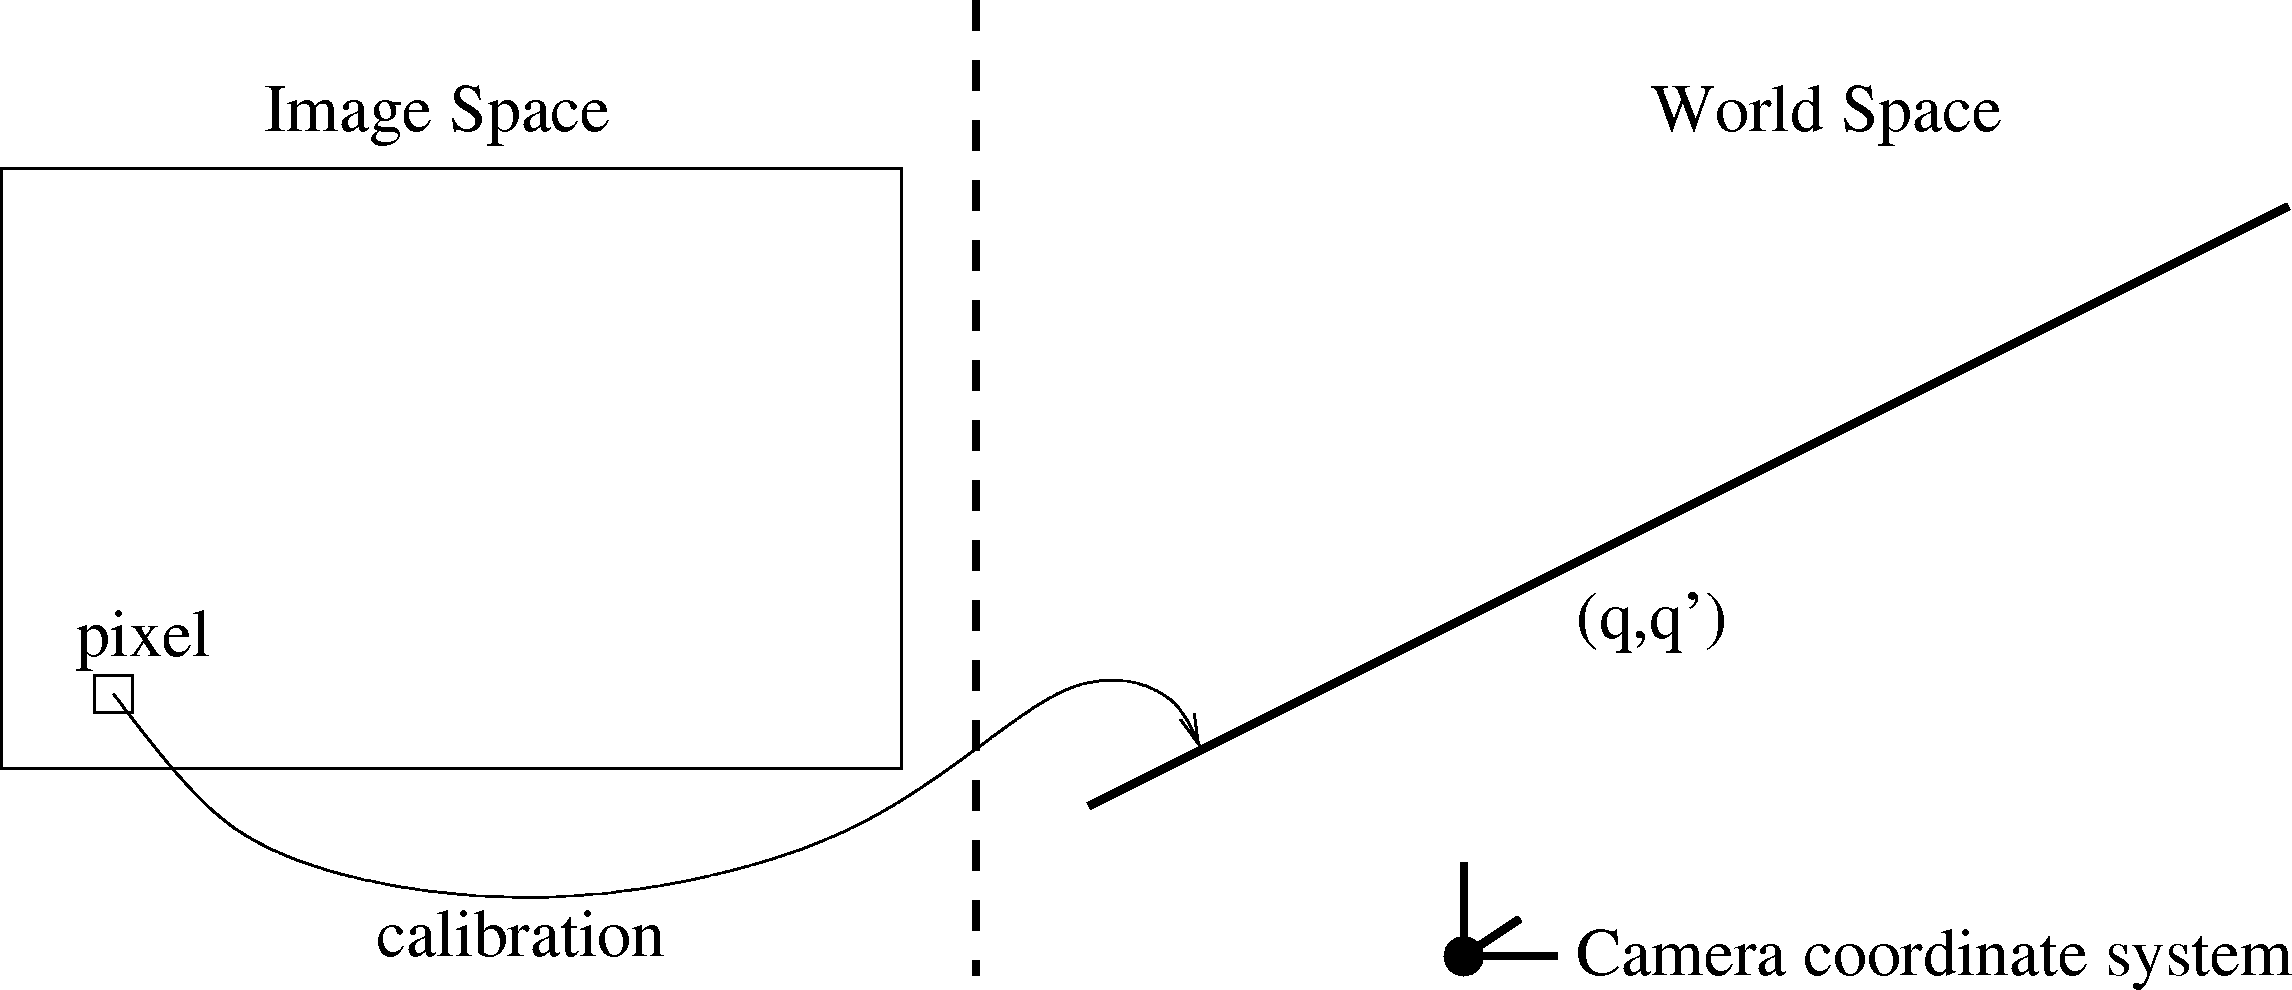 The simplified model captures only the direction of the ray, parameterized by its Plücker vectors q, q. lines [19]. The generalized camera model [13] is briefly introduced in Section 2.